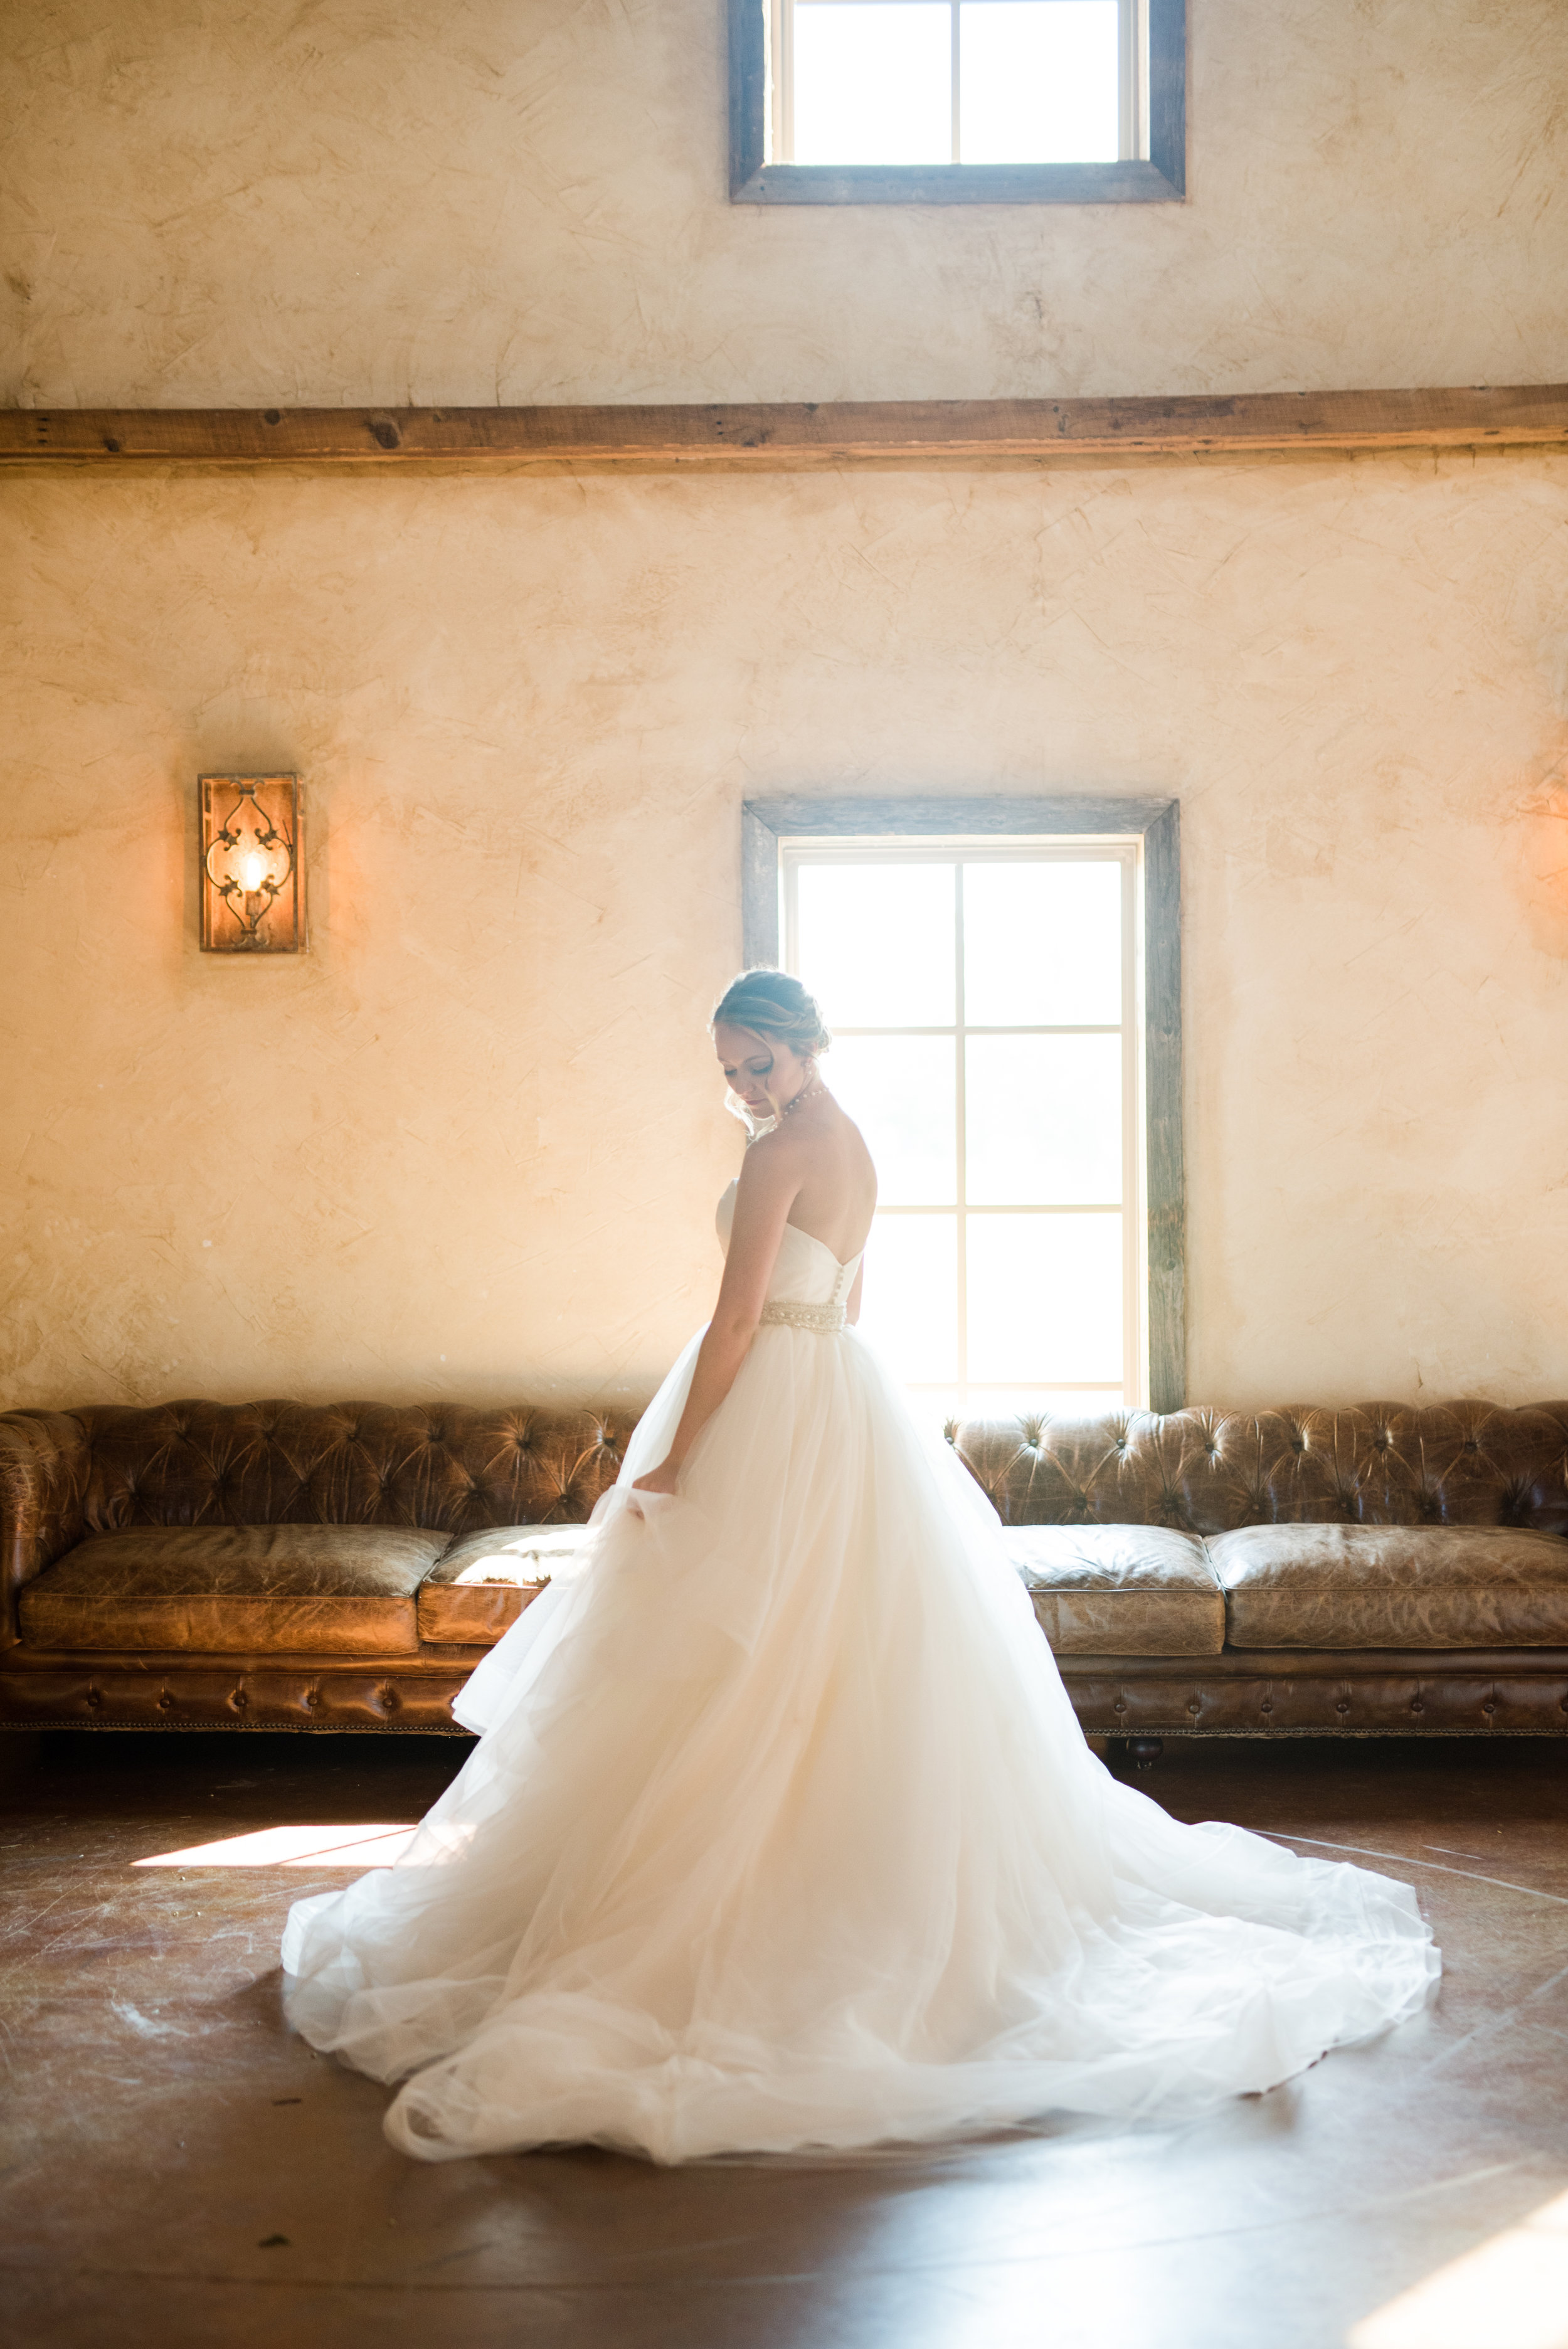 The Barn at Bridlewood wedding in Hattiesburg, Mississippi (MS) in June | Bride alone